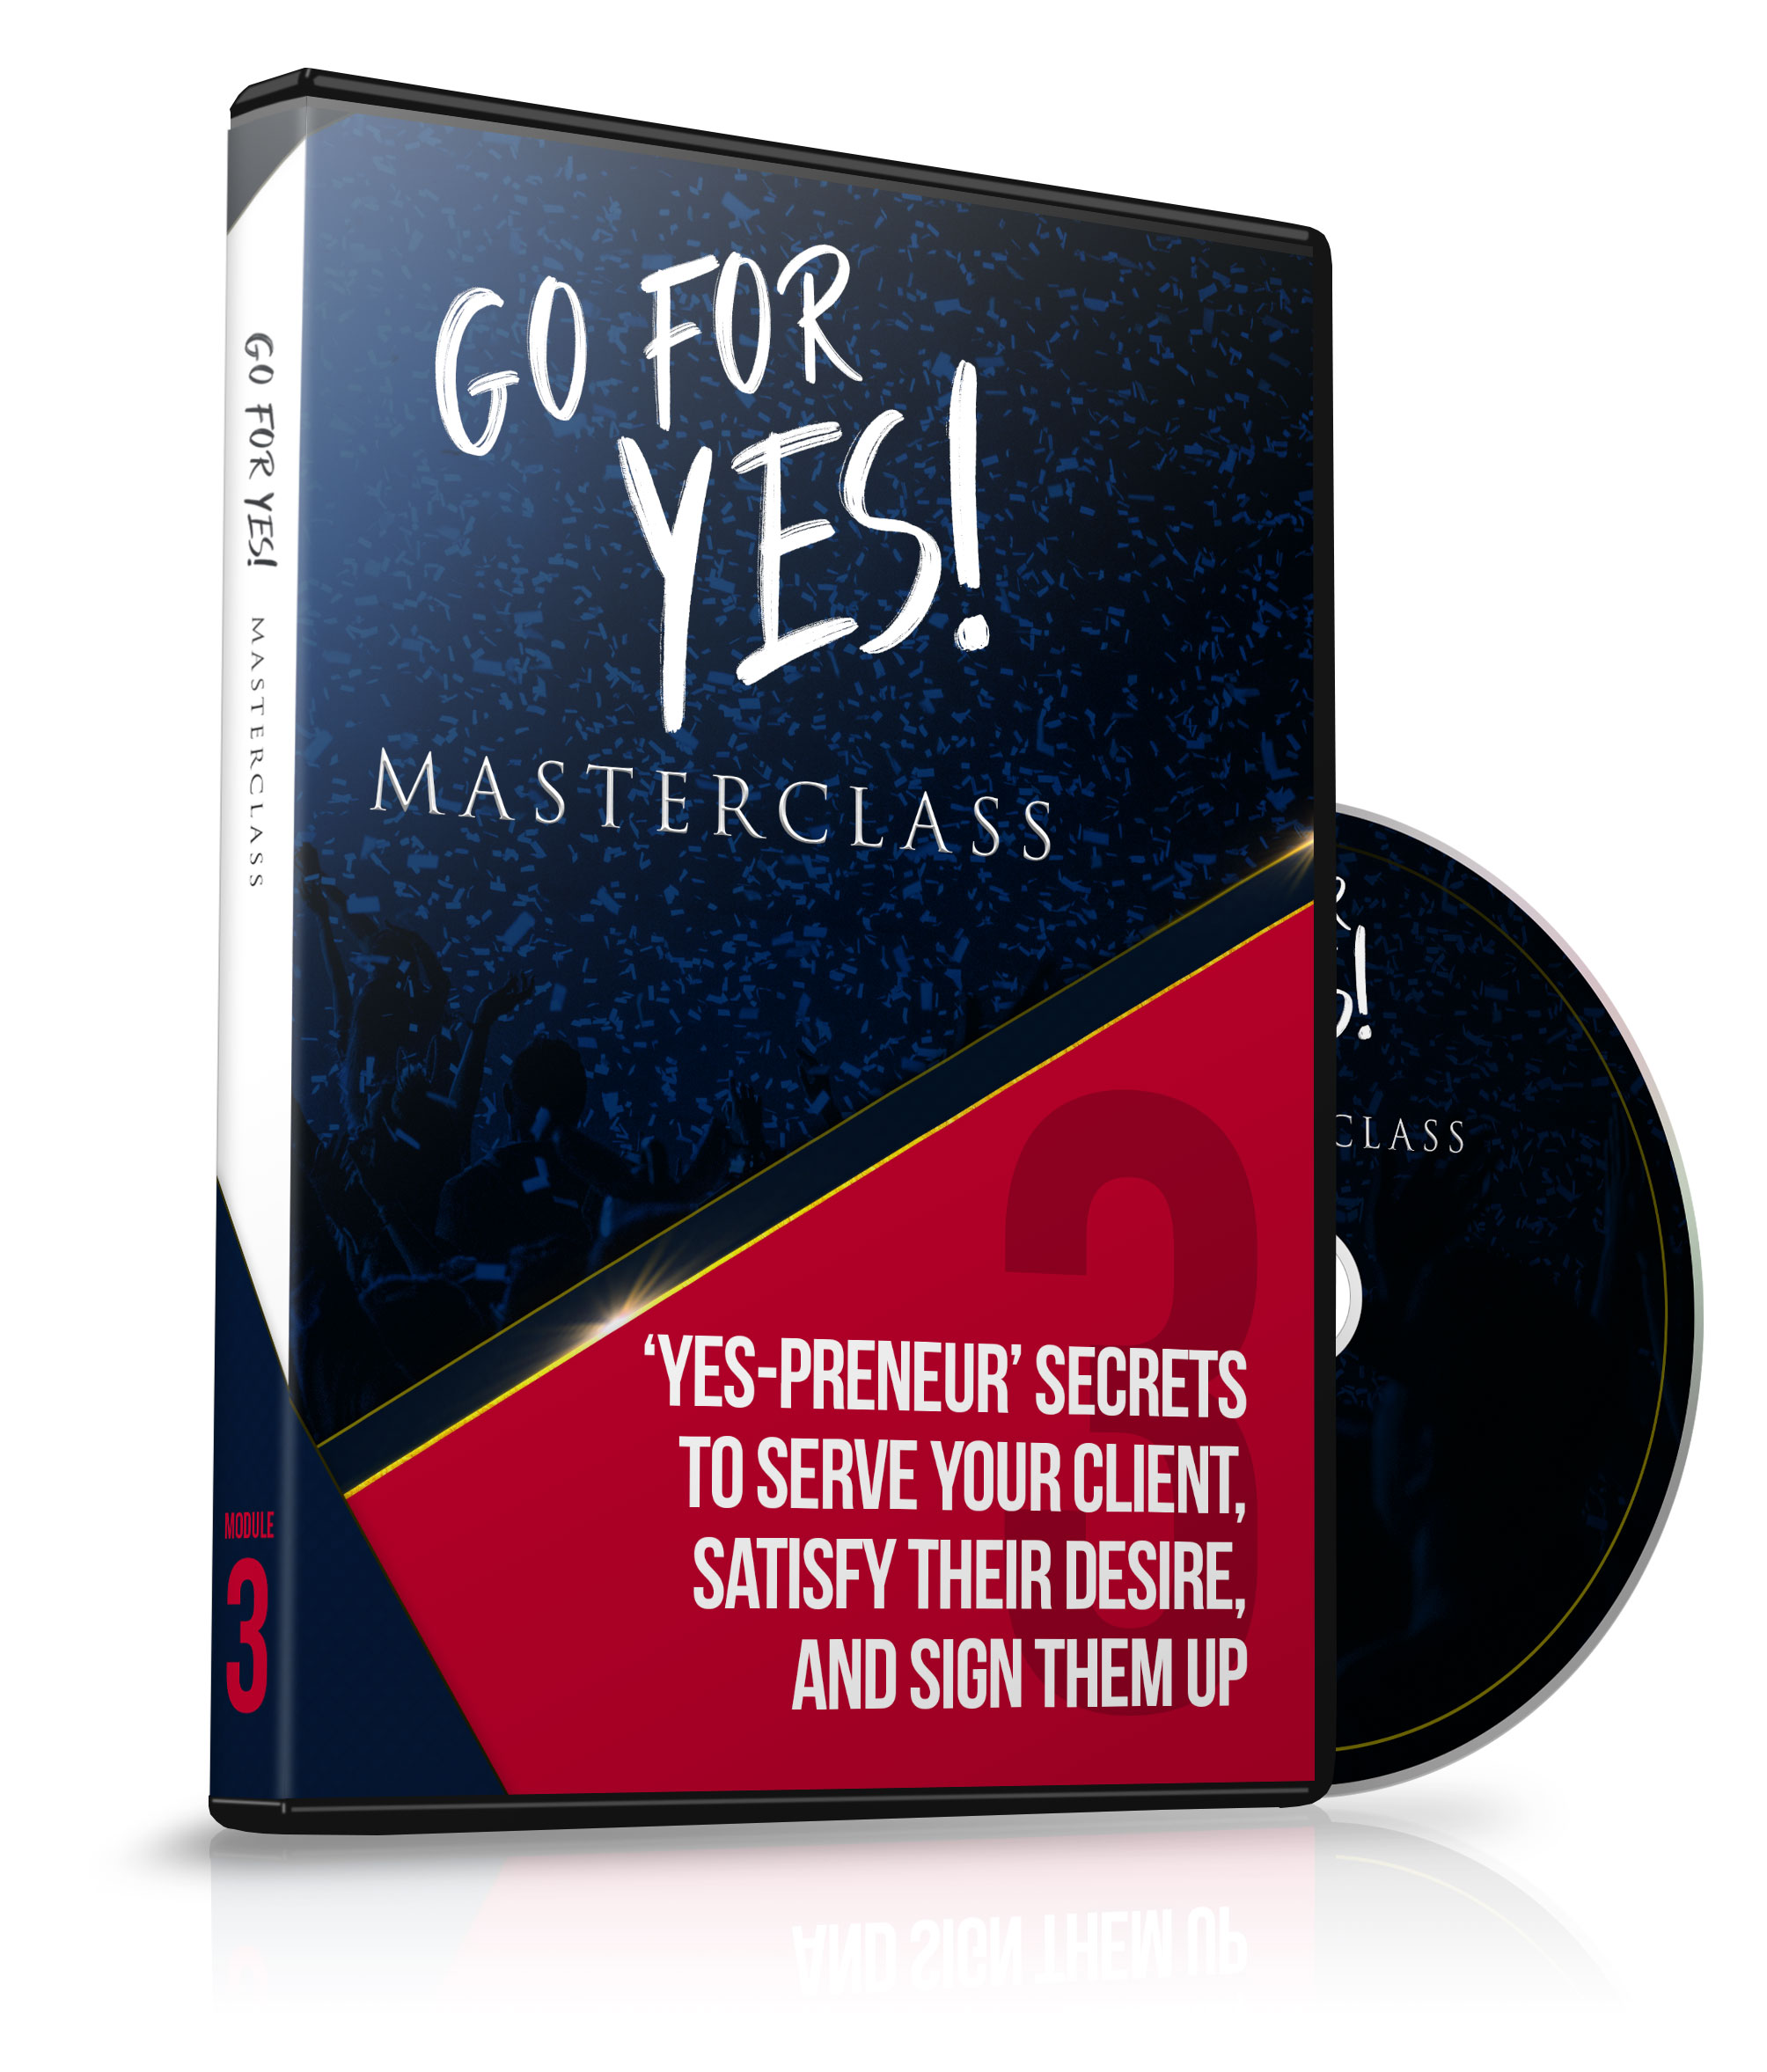 Module 3 - 'YES-PRENEUR' Secrets to Serve Your Client, Satisfy Their Desire, and Sign Them Up